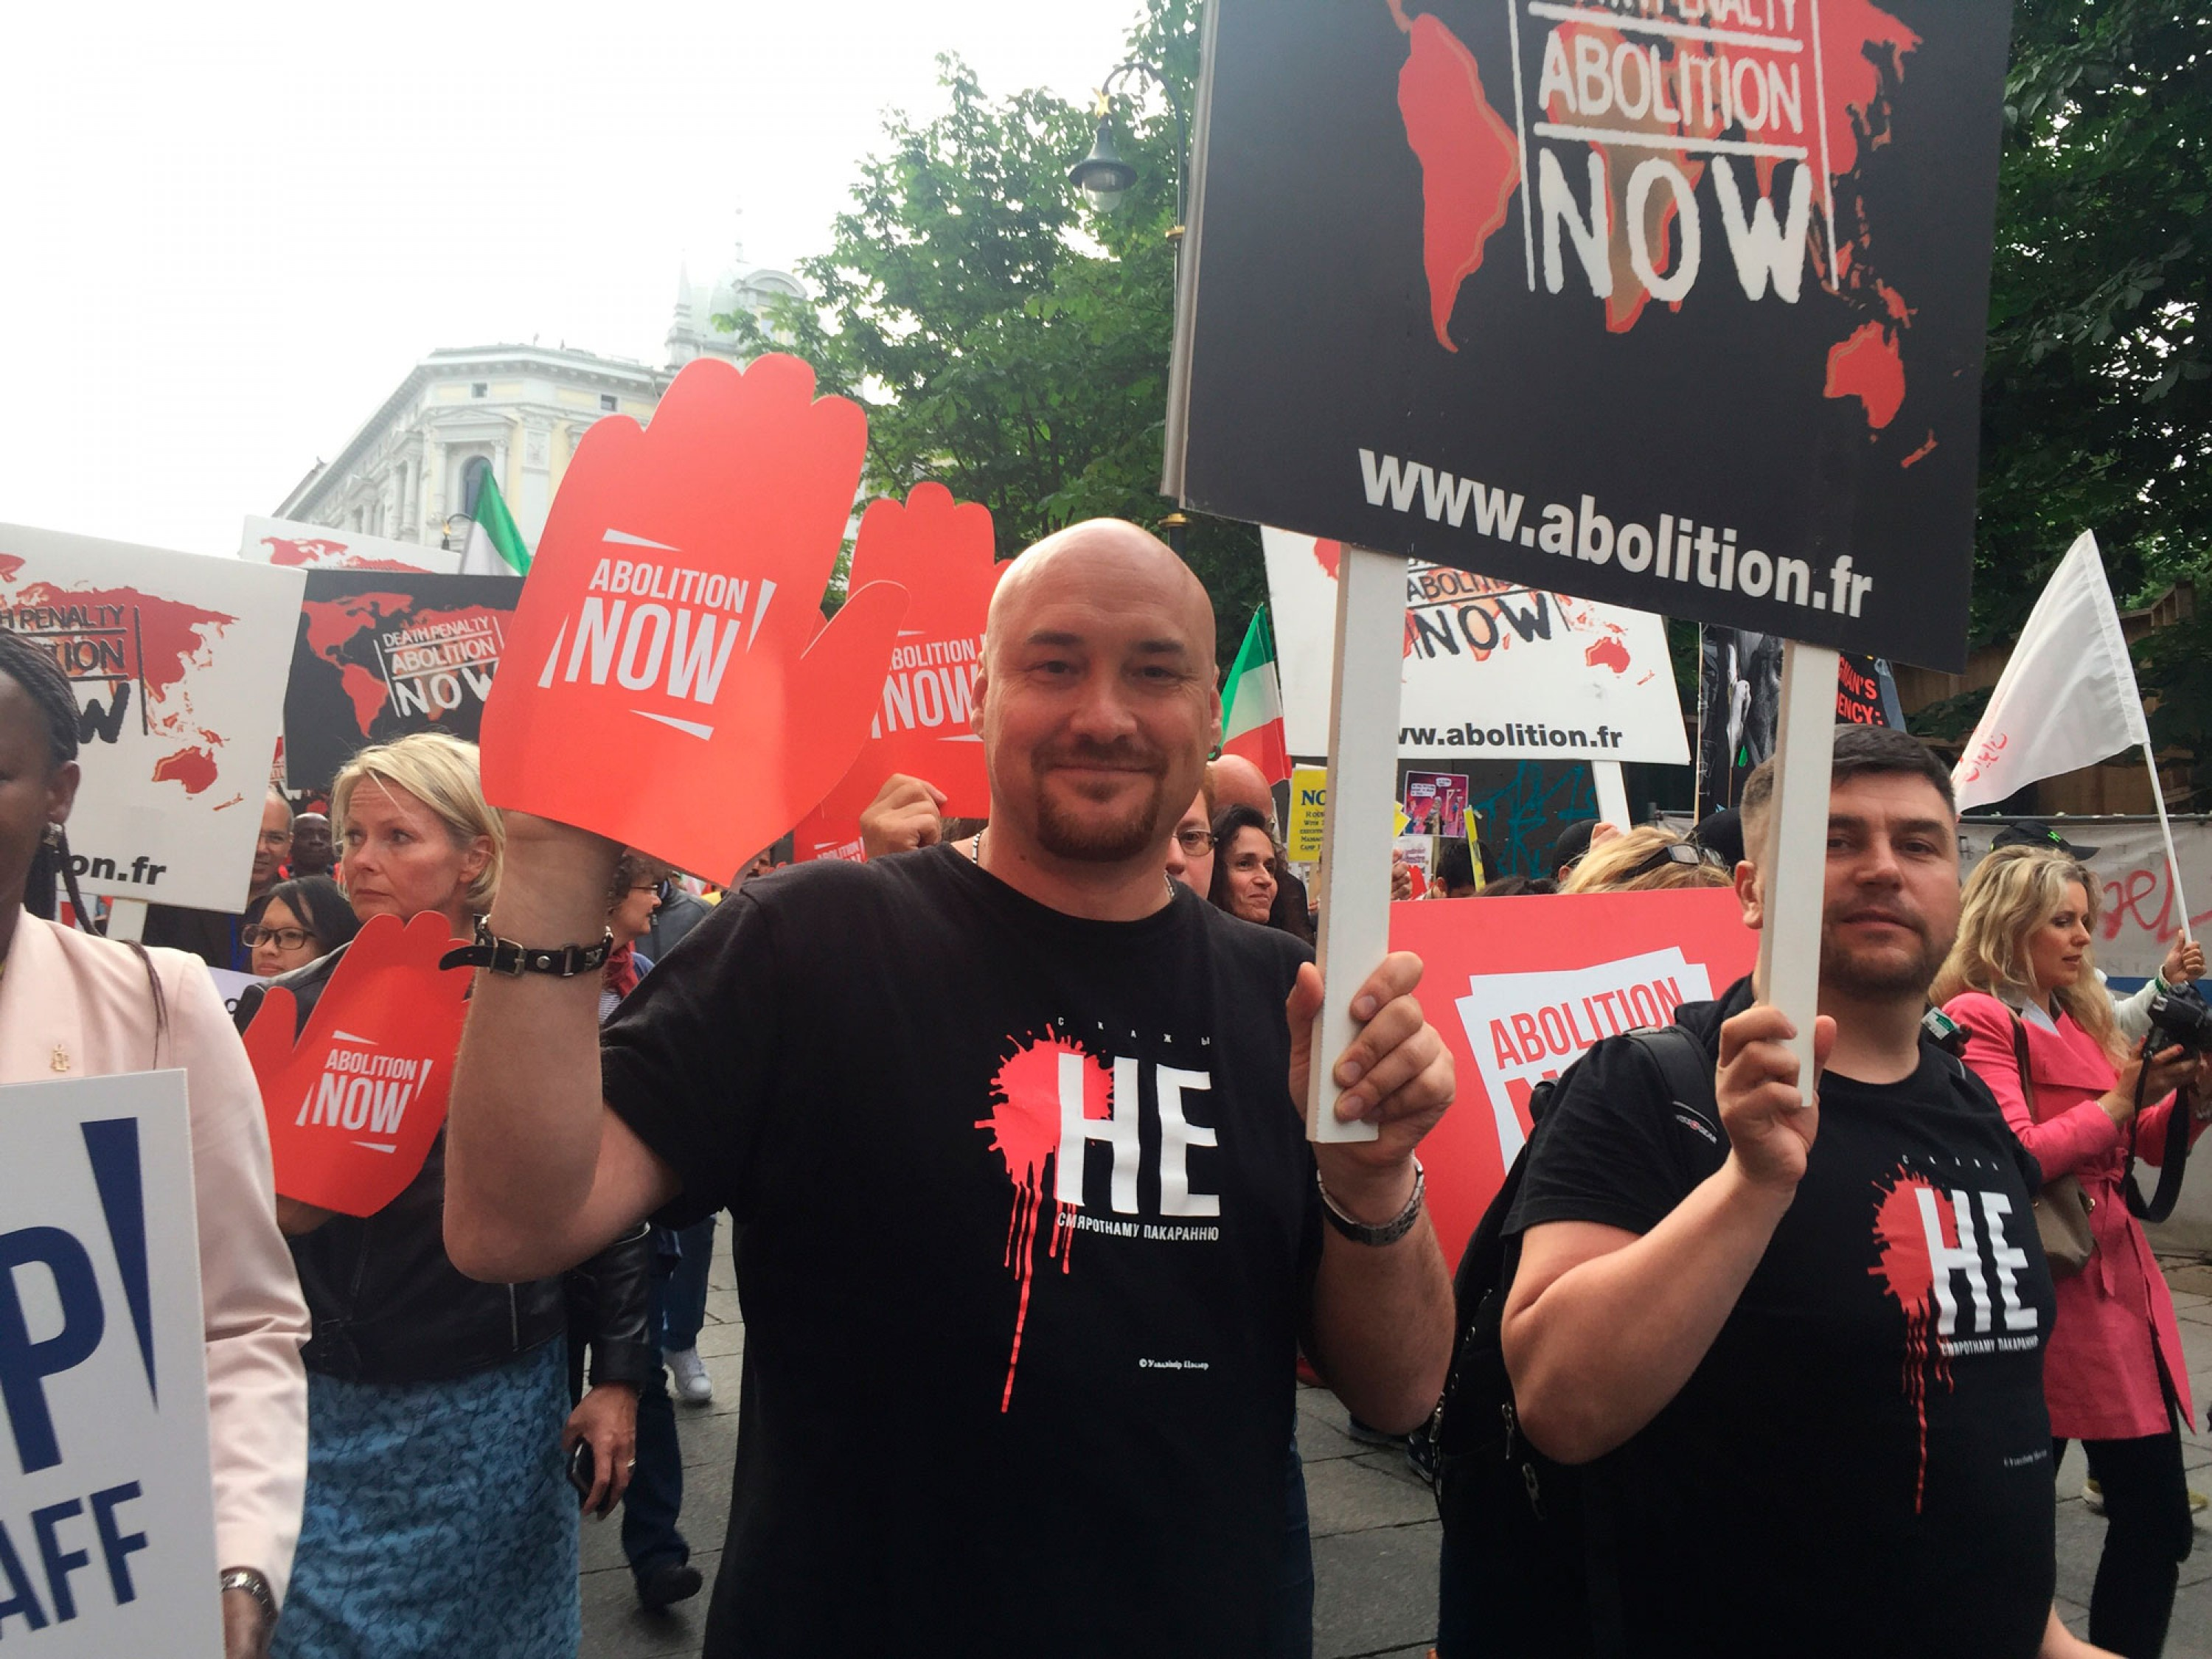 Valiantsin Stefanovich and Andrei Paluda during the March against the Death Penalty in Oslo. June 23, 2016